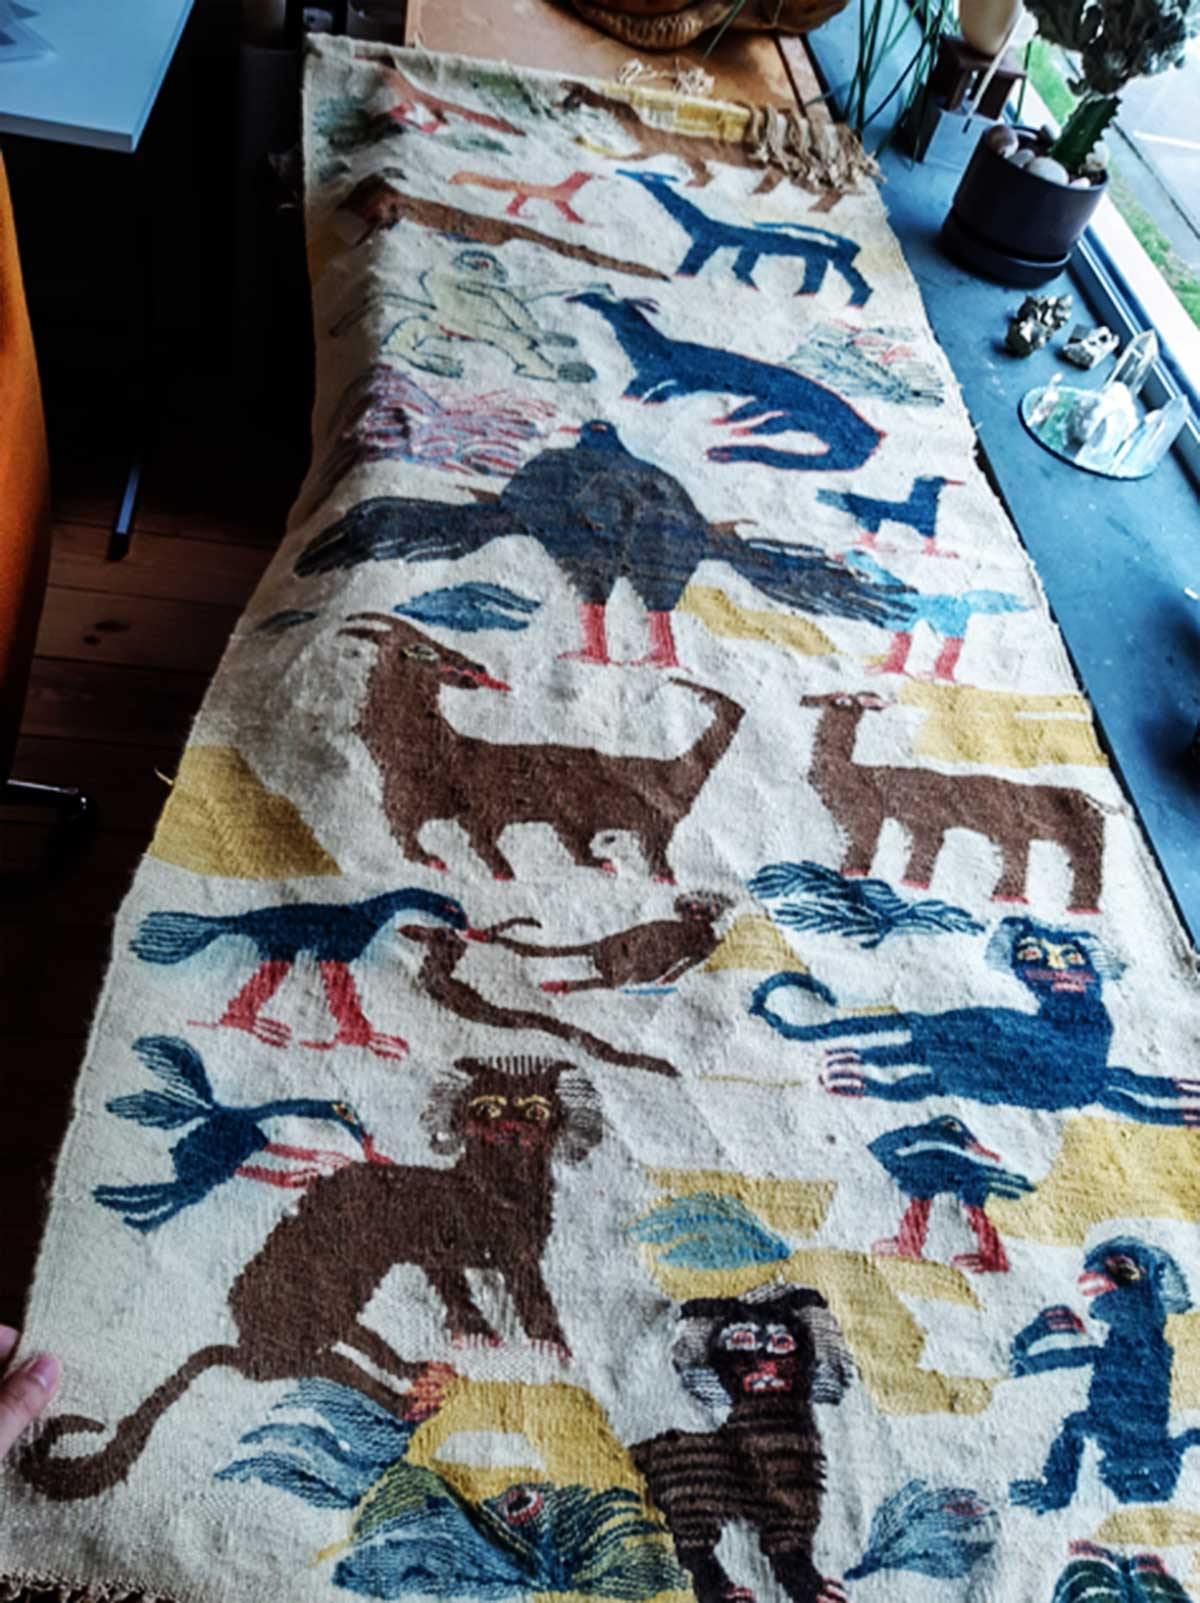 The rug in the house of the donor, photo made by Amanda Pinatih on 7 July 2020.